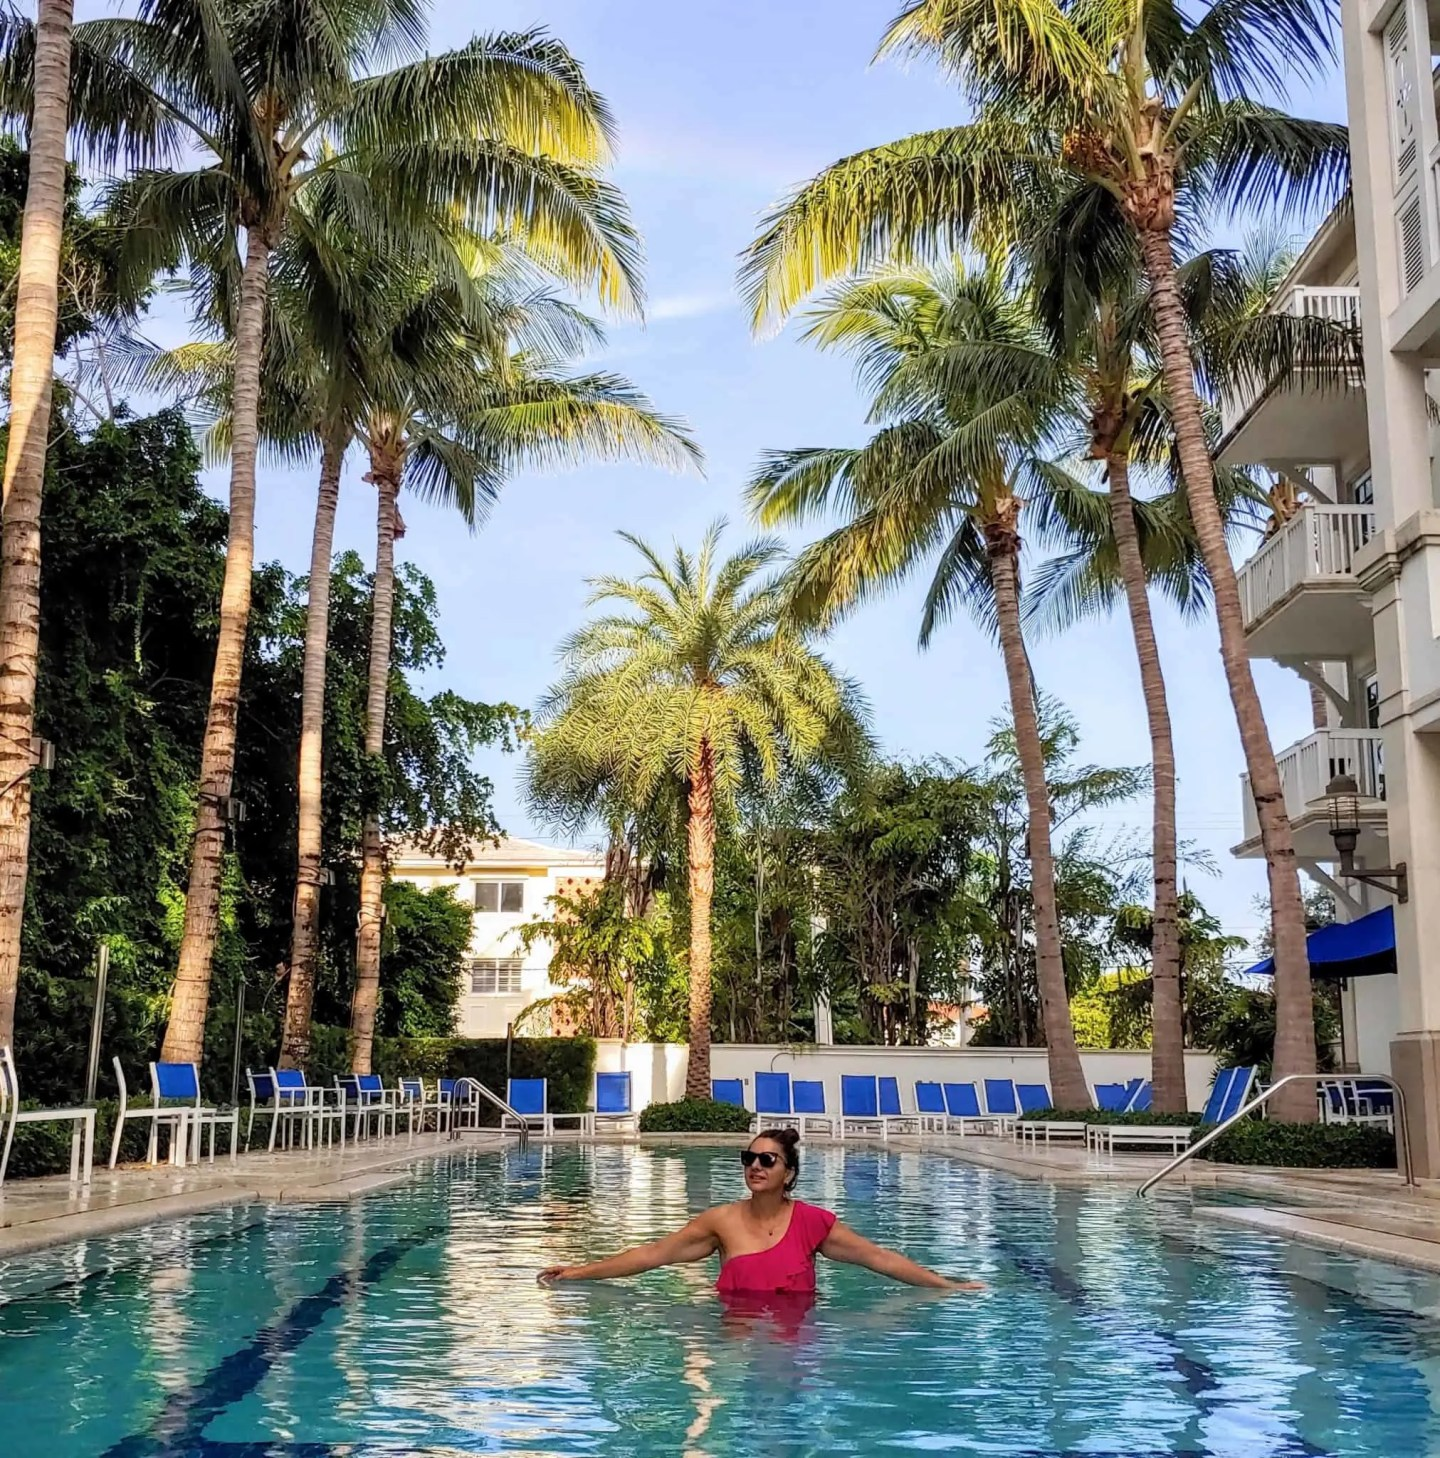 Seagate Hotel pool surrounded with palm trees